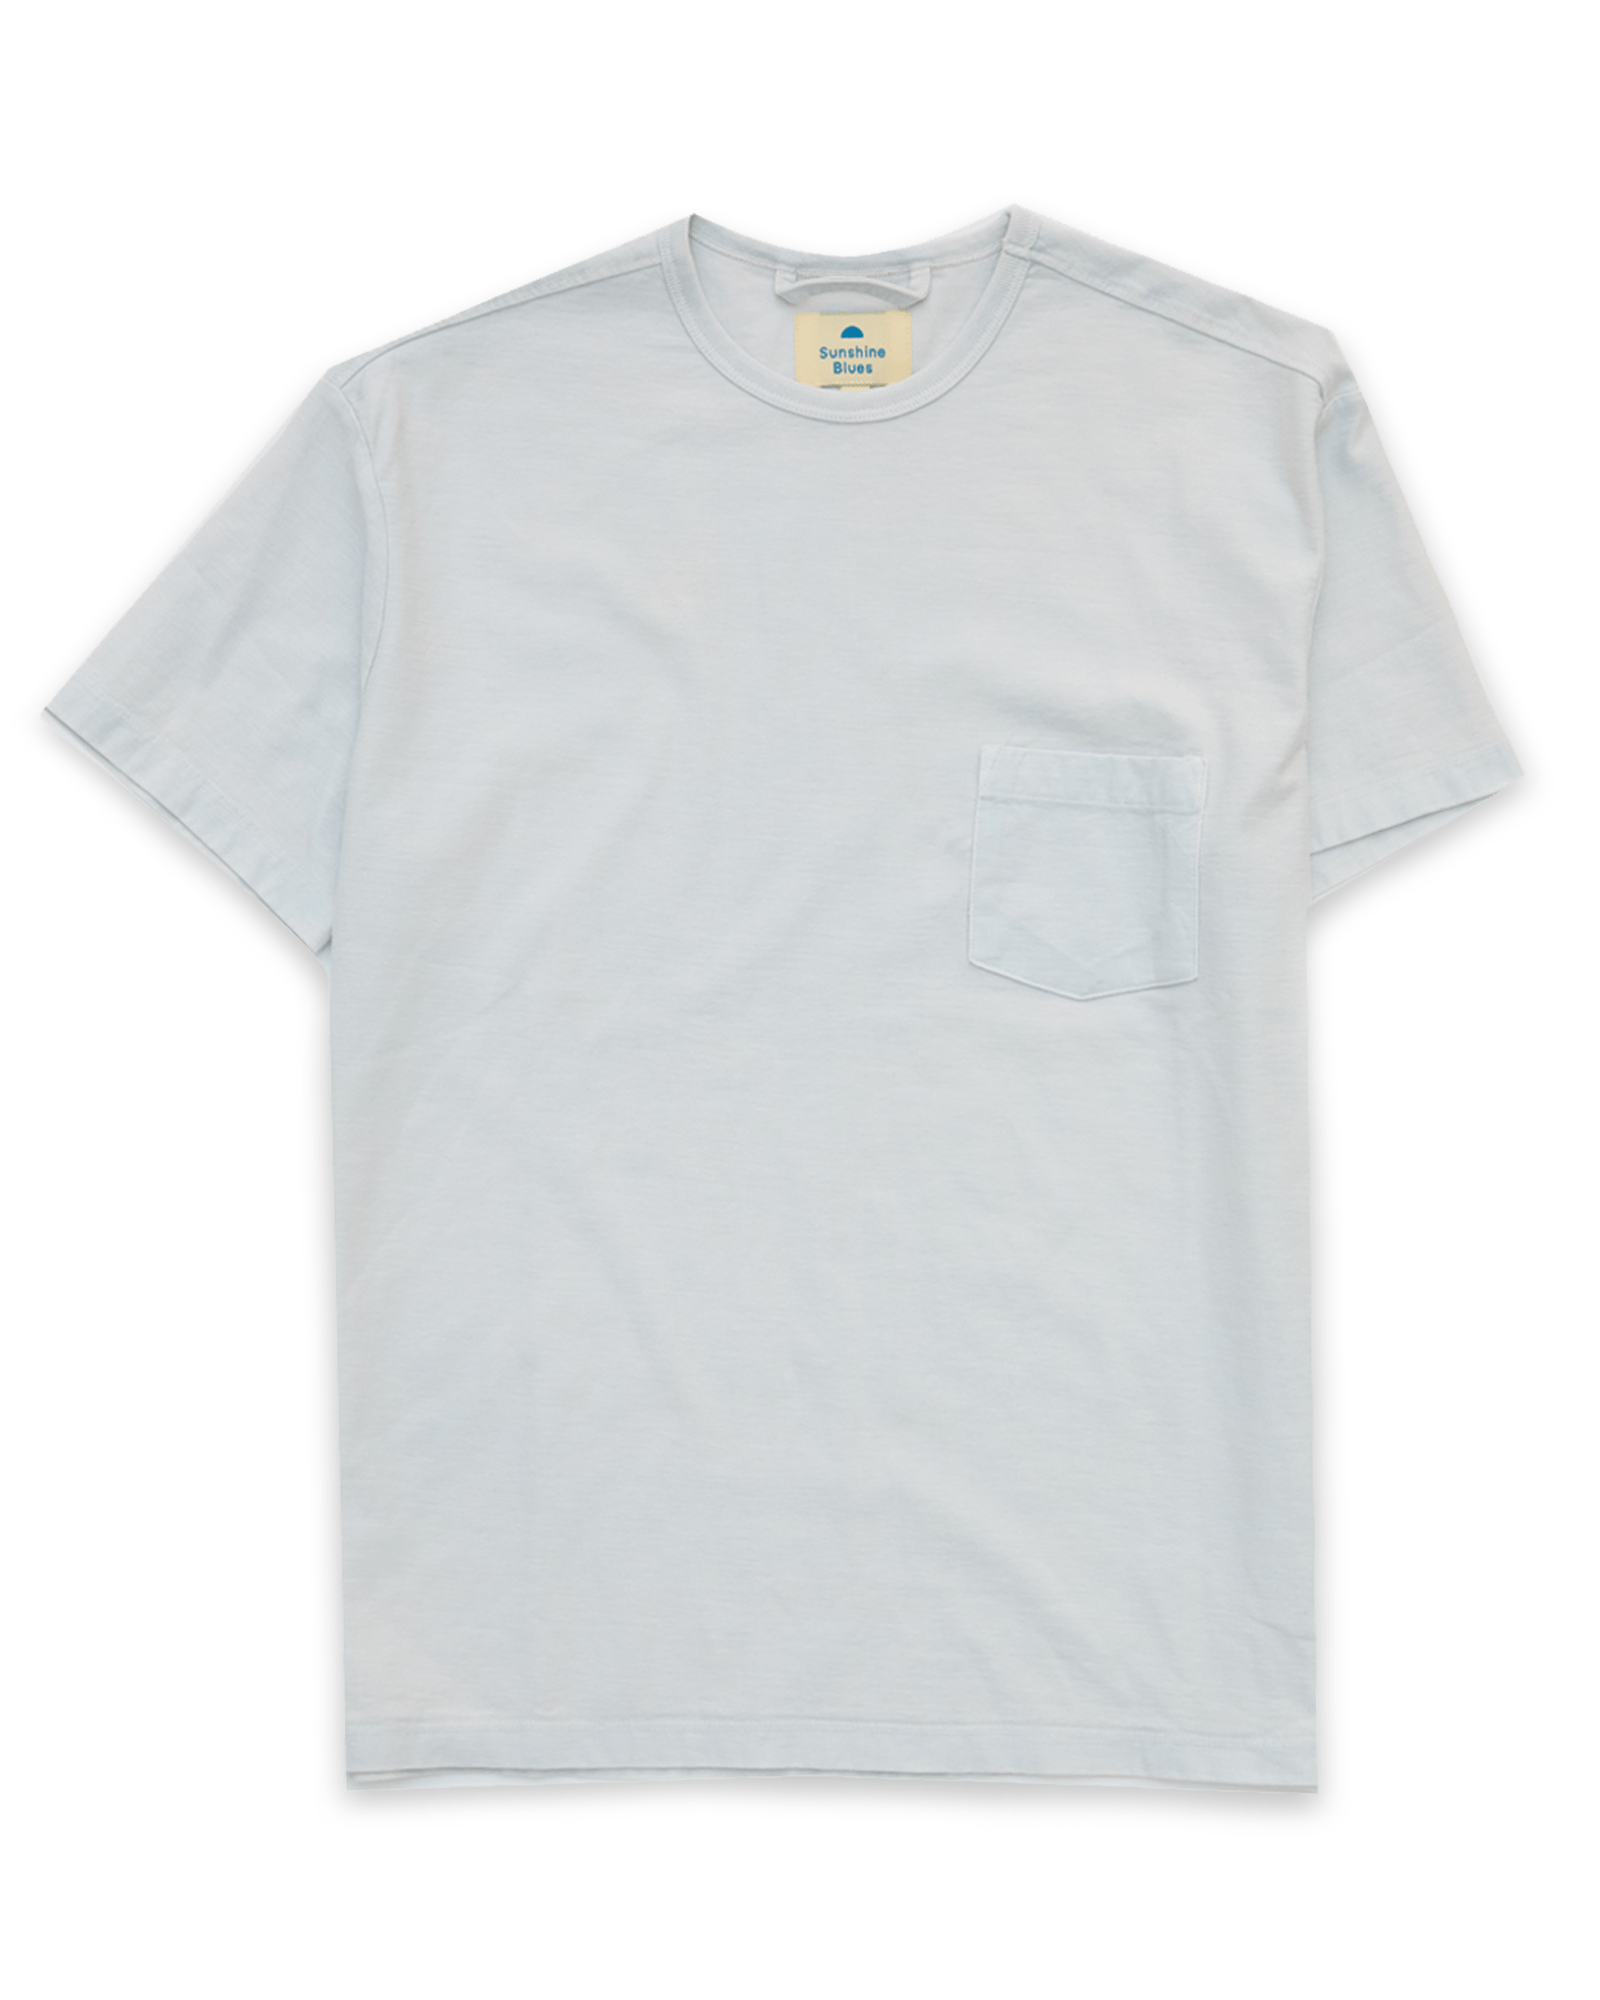 SSB Illusion Blue T-Shirt